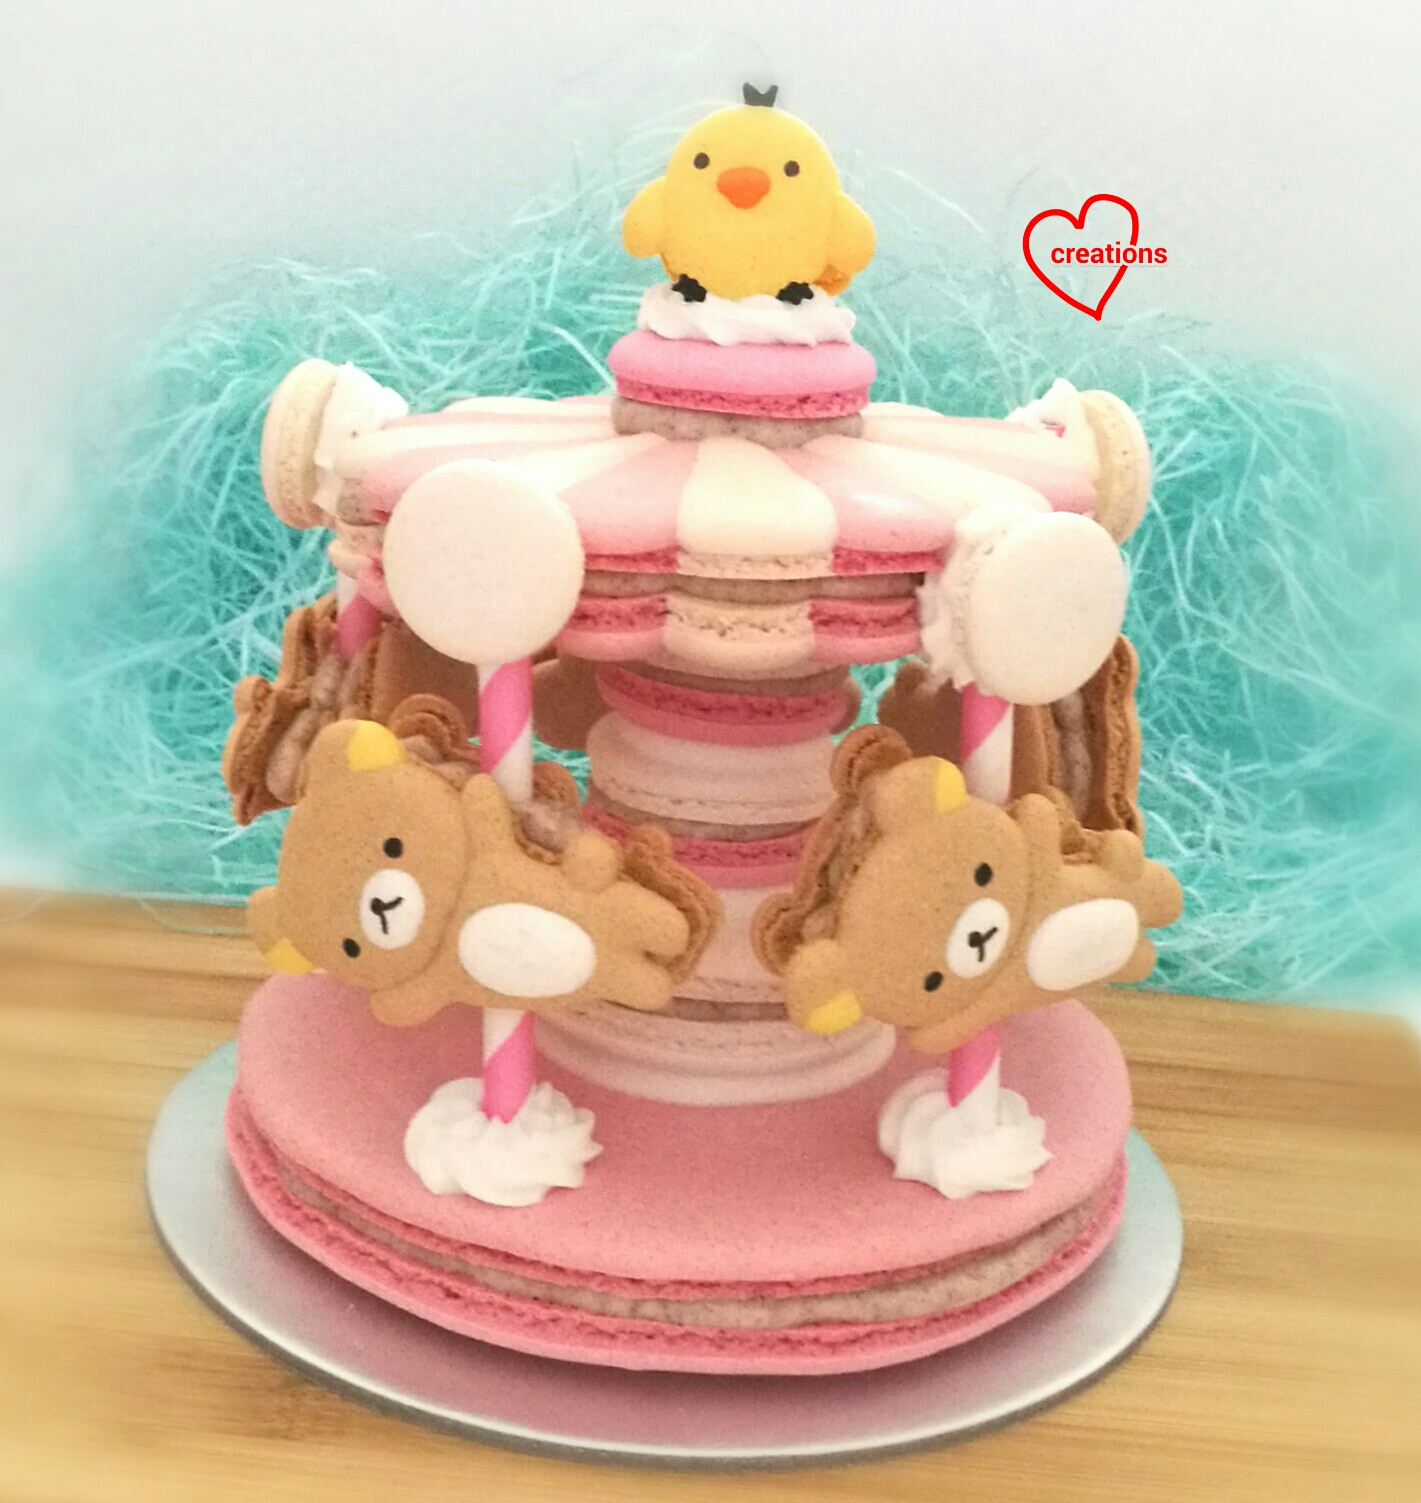 Christ And Have Always So Encouraging Requested This For Her Daughters Birthday Presenting My Sweet Girly Rilakkuma Kiiroitori Macaron Carousel